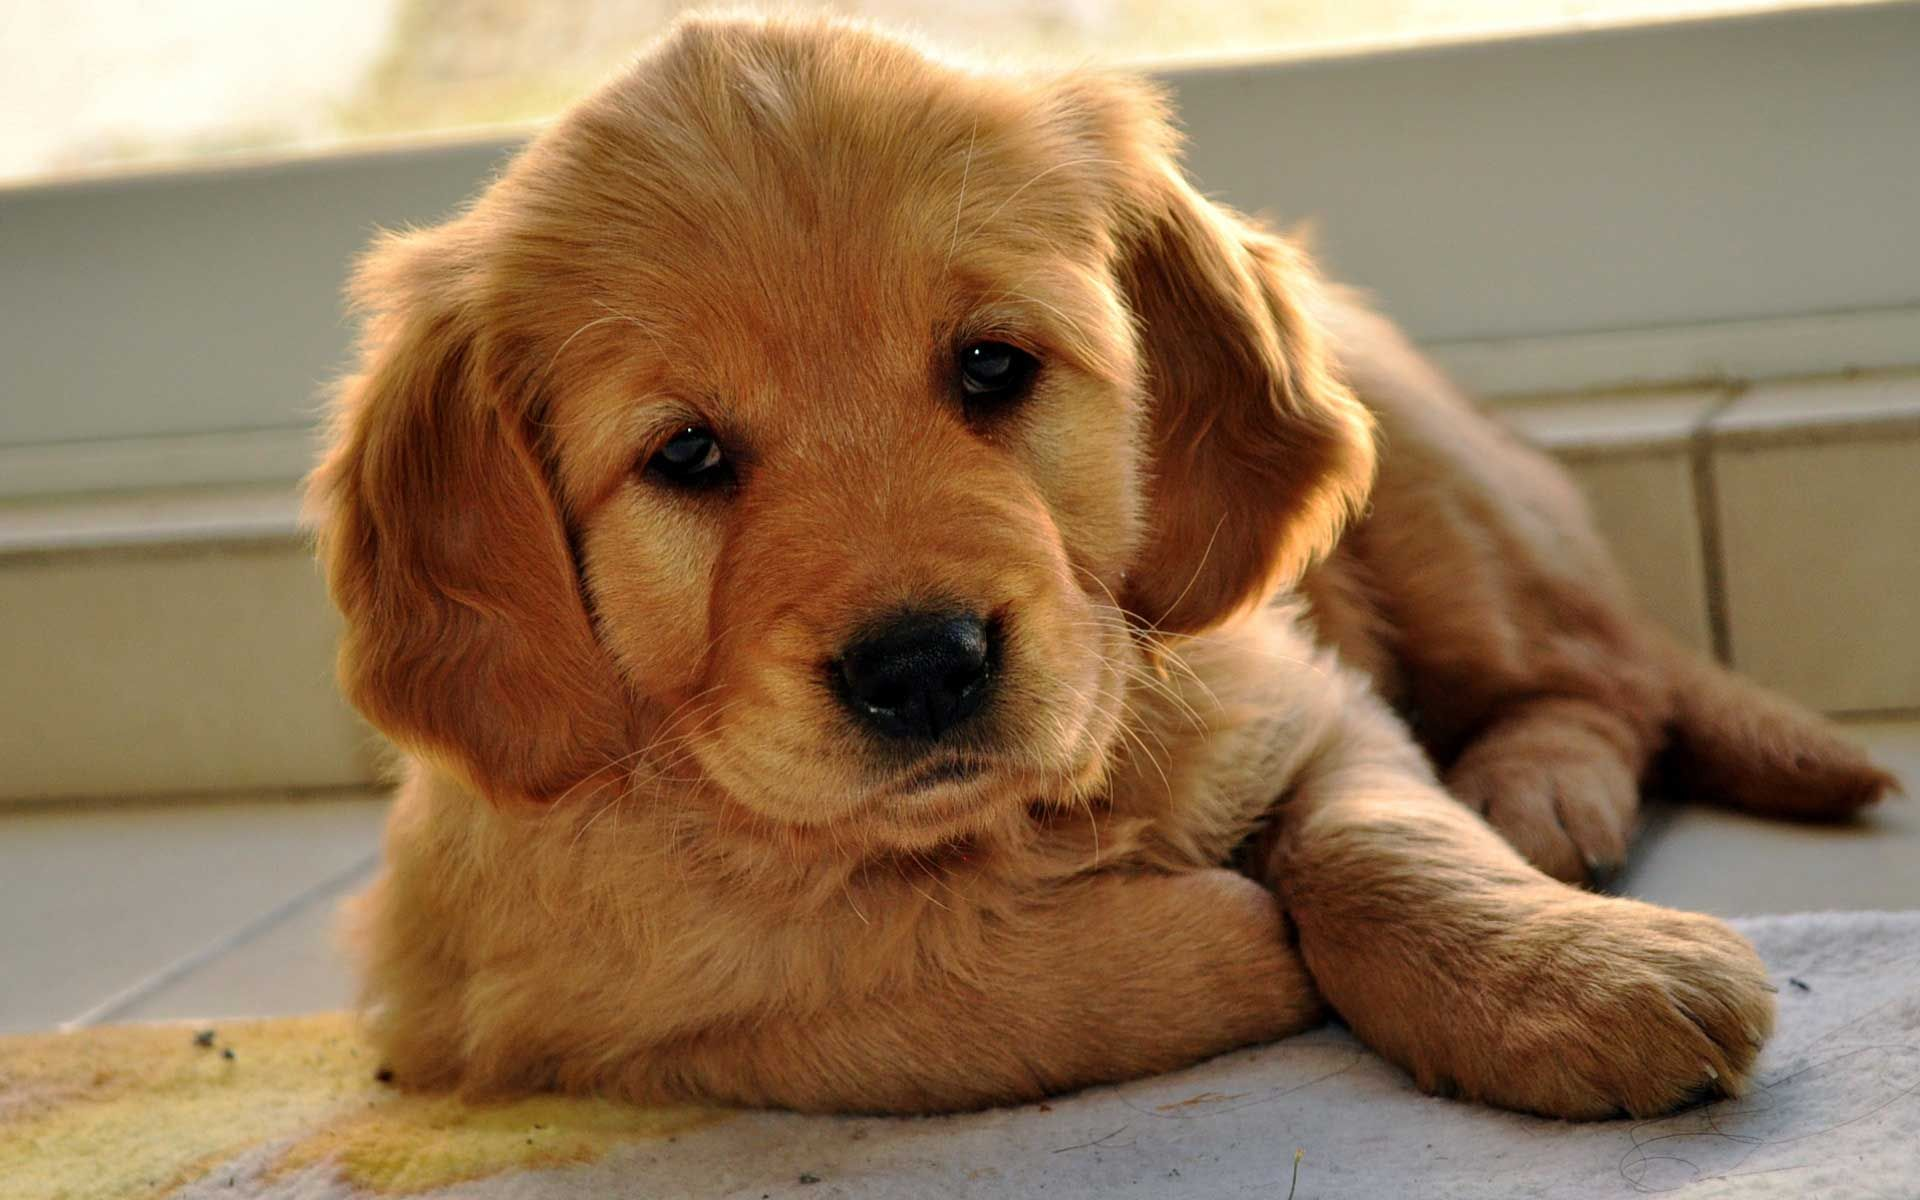 Golden Retriever Puppies Wallpapers Free Red Golden Retriever Puppy Golden Retriever Puppy Retriever Puppy